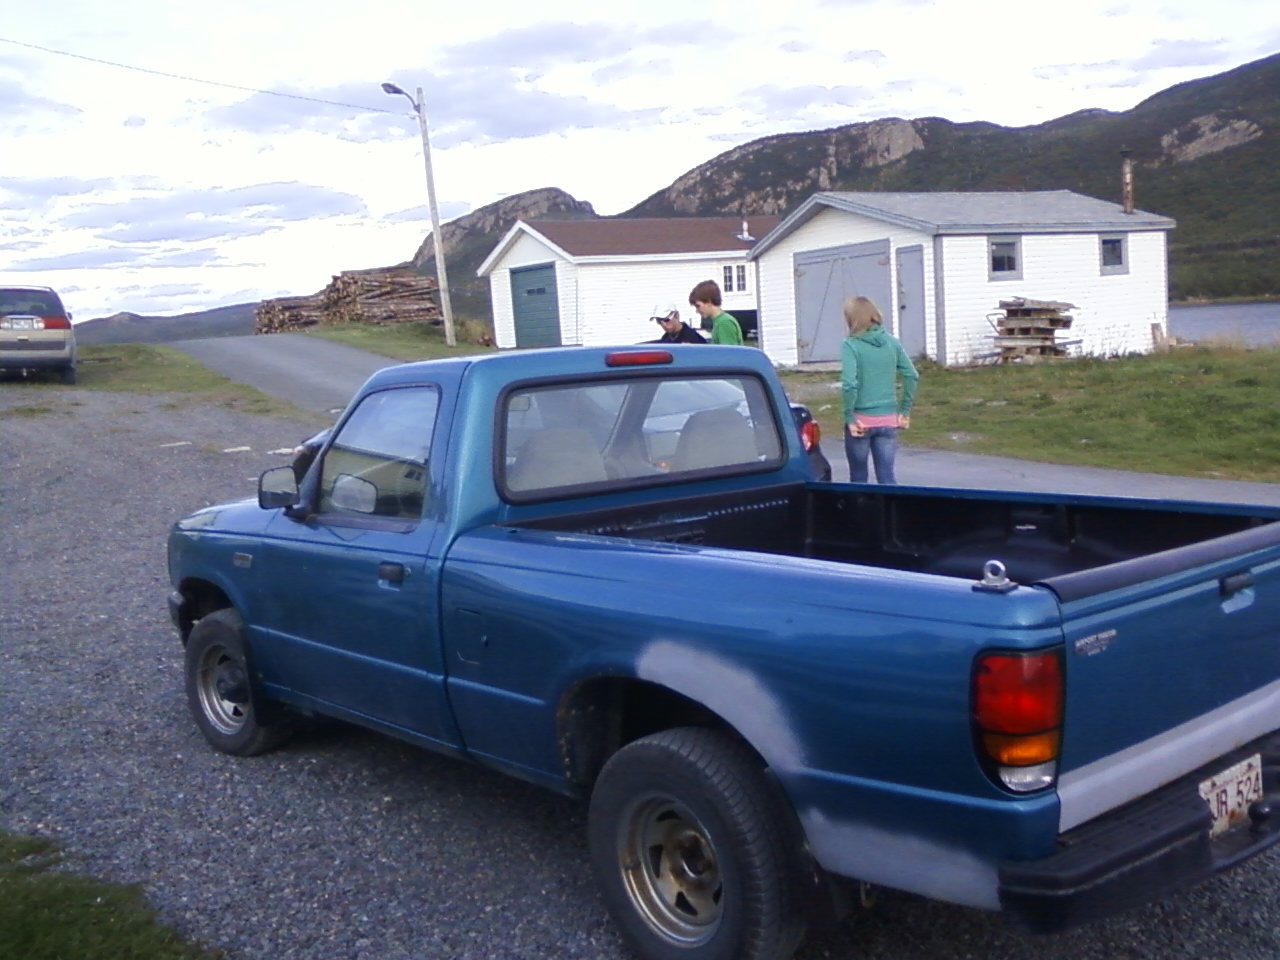 1996 Mazda B-Series Pickup picture